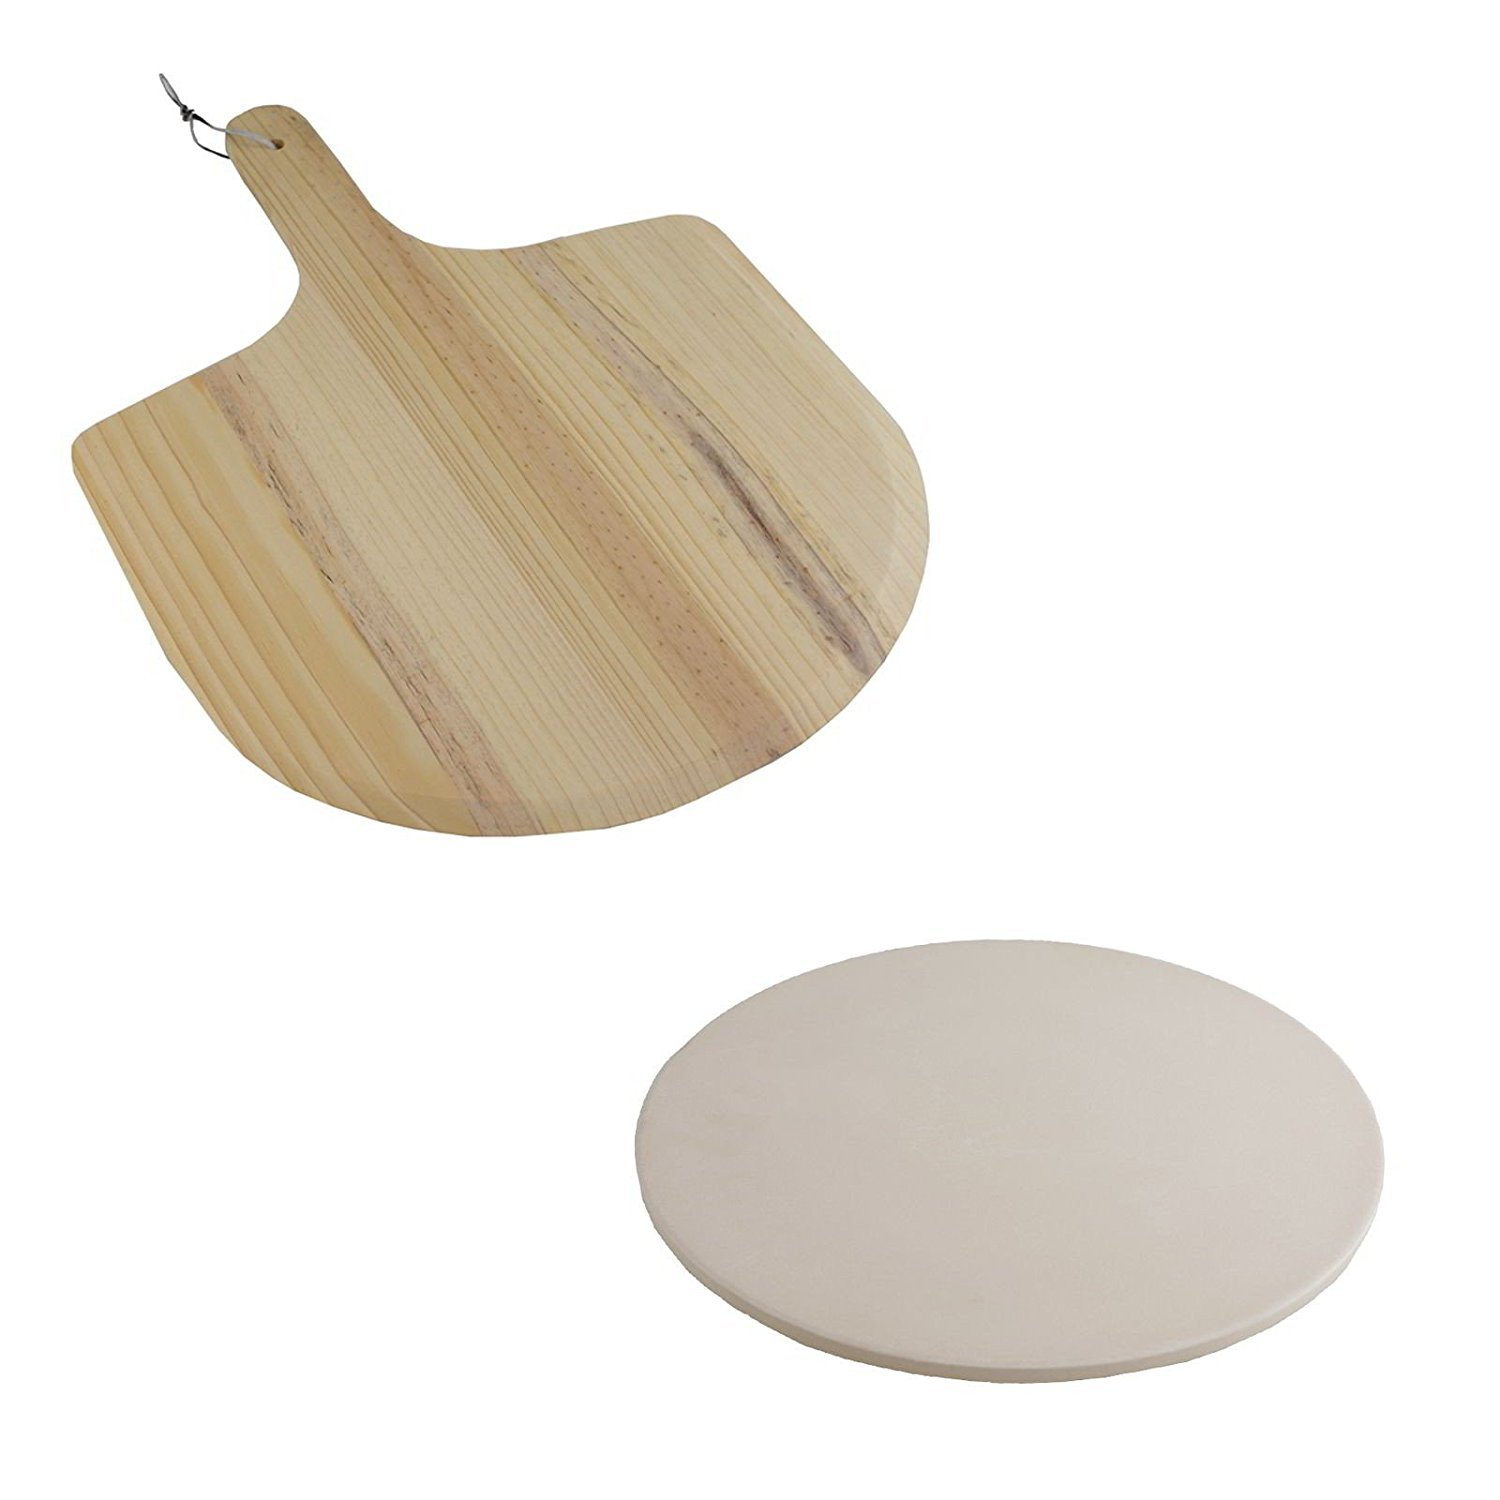 Pizza Baking Stone Set Cooking Plate Serving Tray & Wooden Paddle Peel Shovel snijplanken